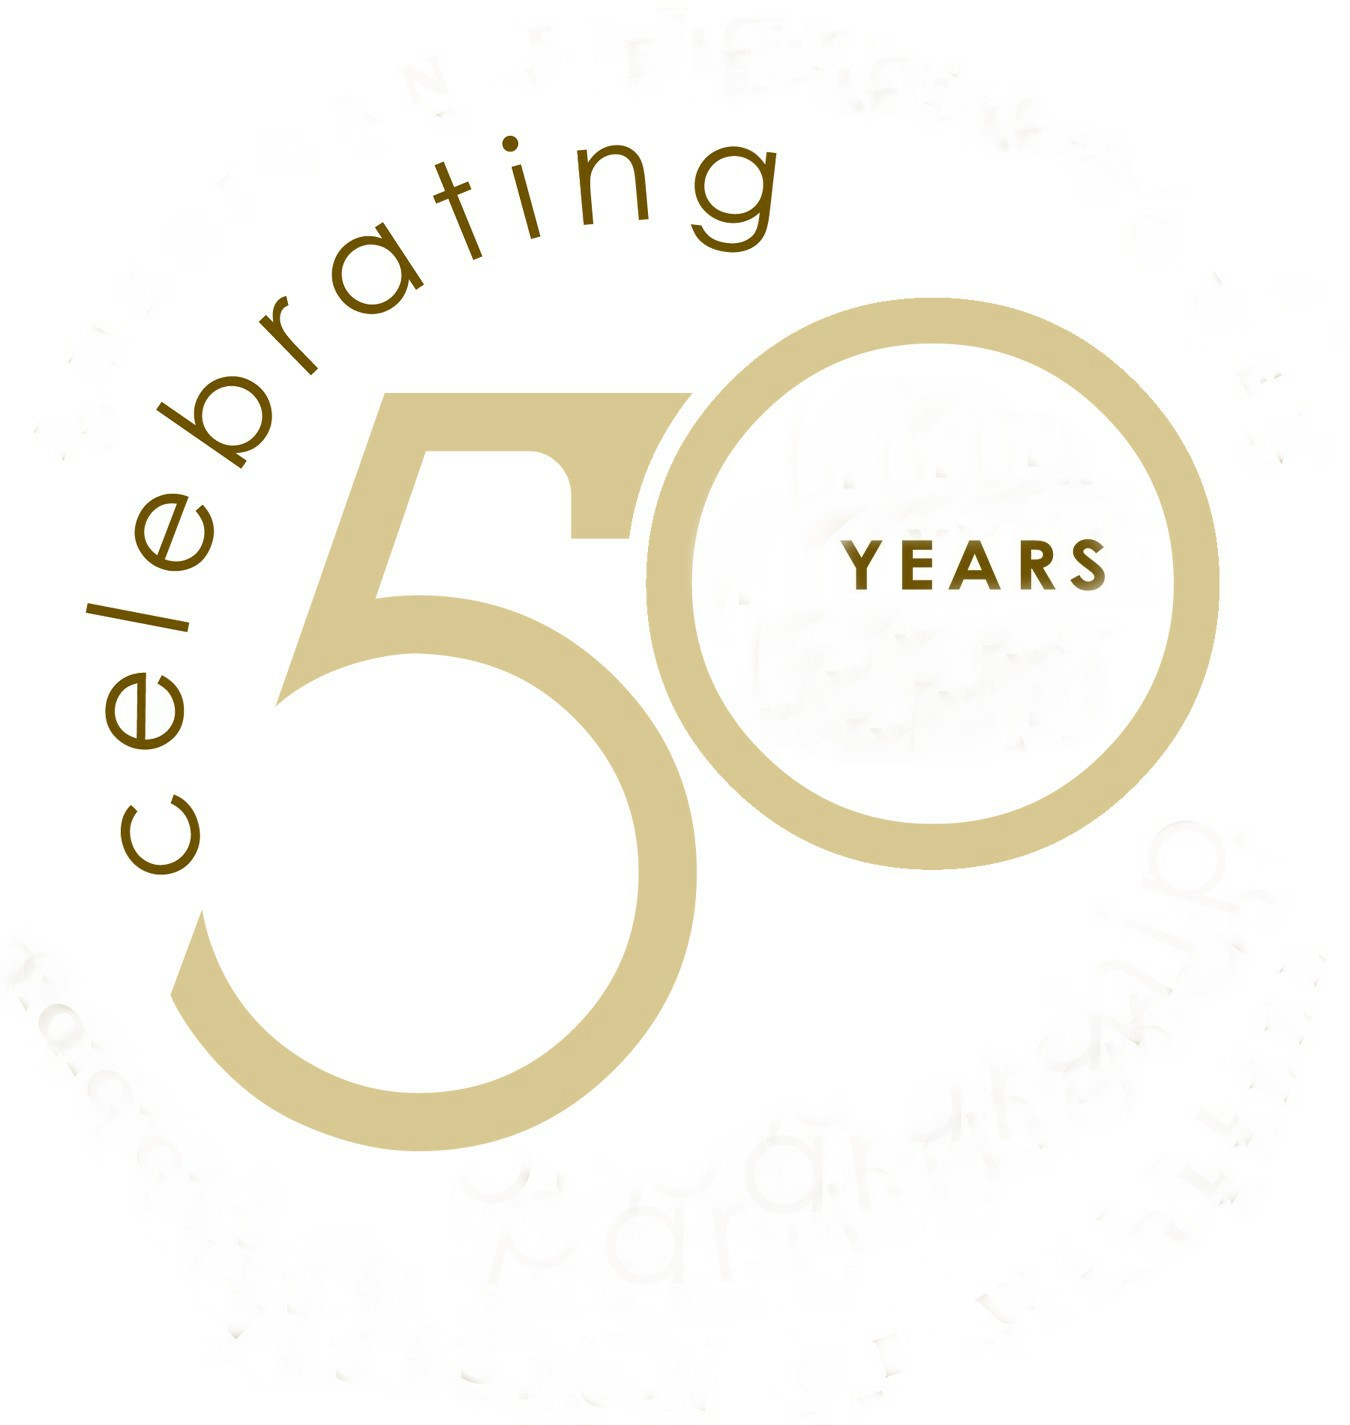 LAW FIRM STOLBERG & TOWNSEND, PA CELEBRATES 50 YEARS IN ...